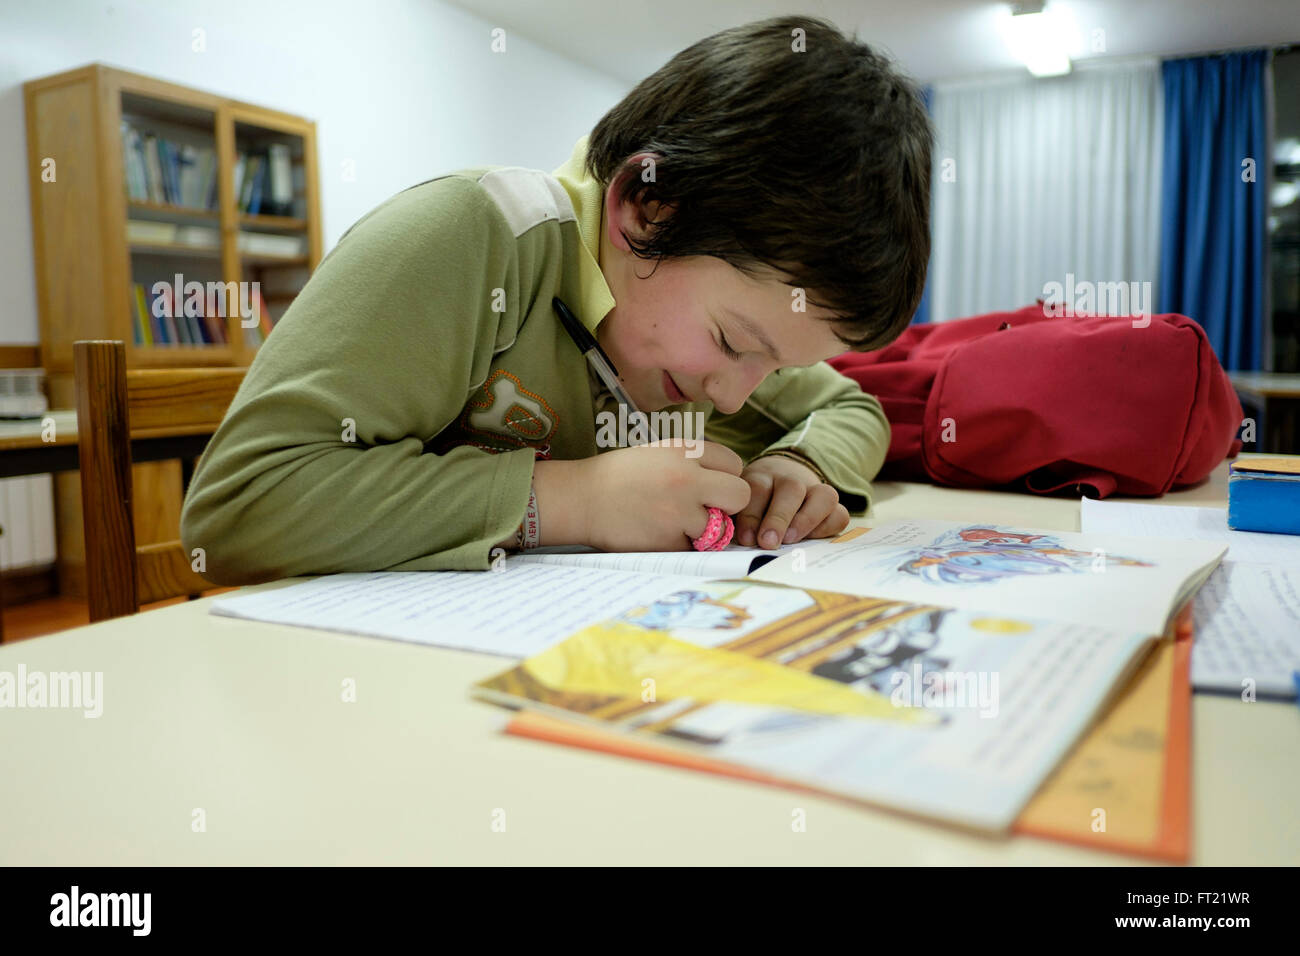 Young boy doing homework at home - Stock Image